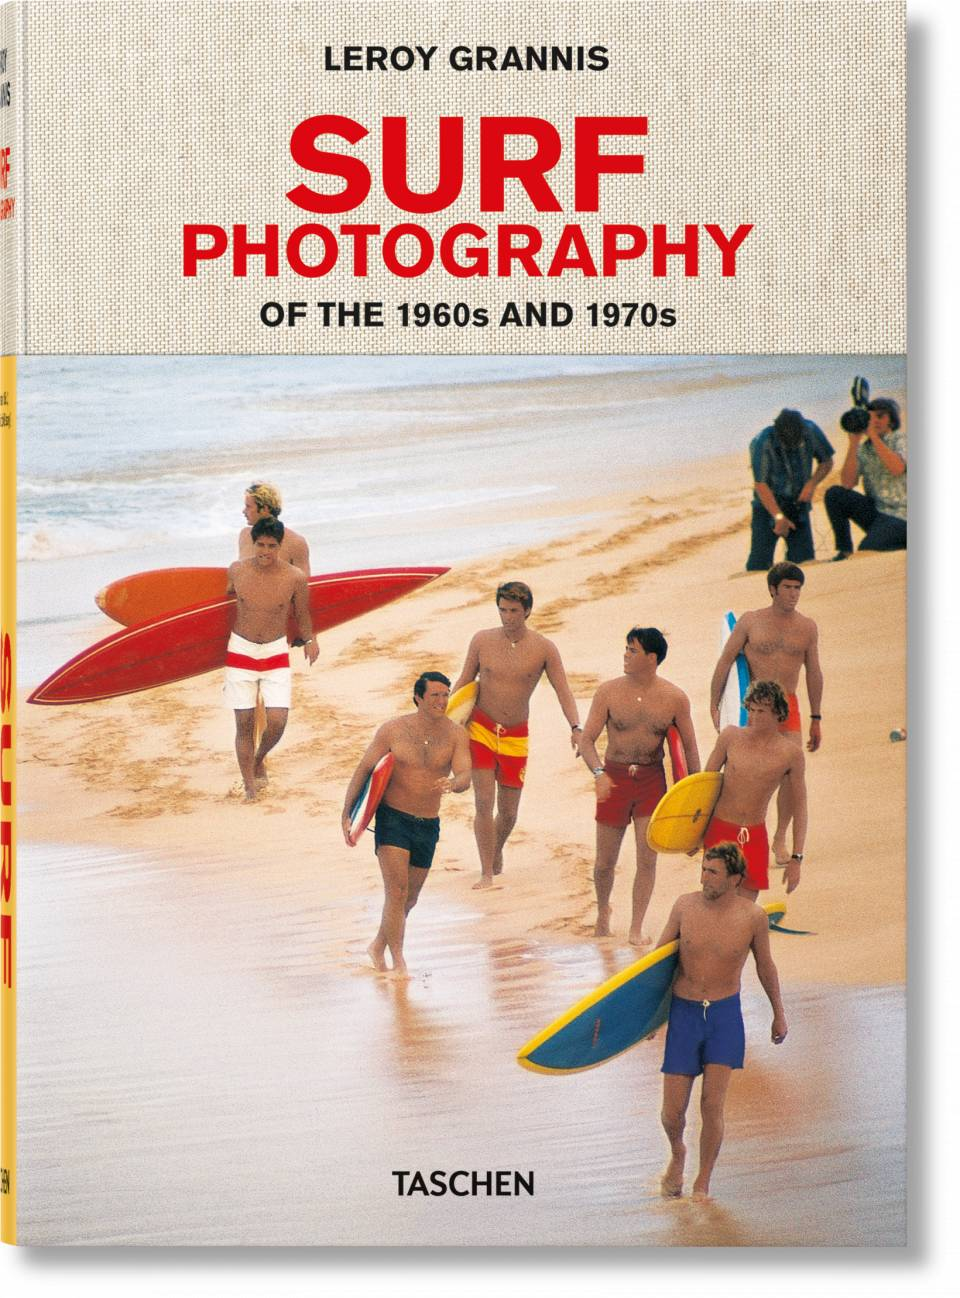 LeRoy Grannis. Surf Photography of the 1960s and 1970s - image 1